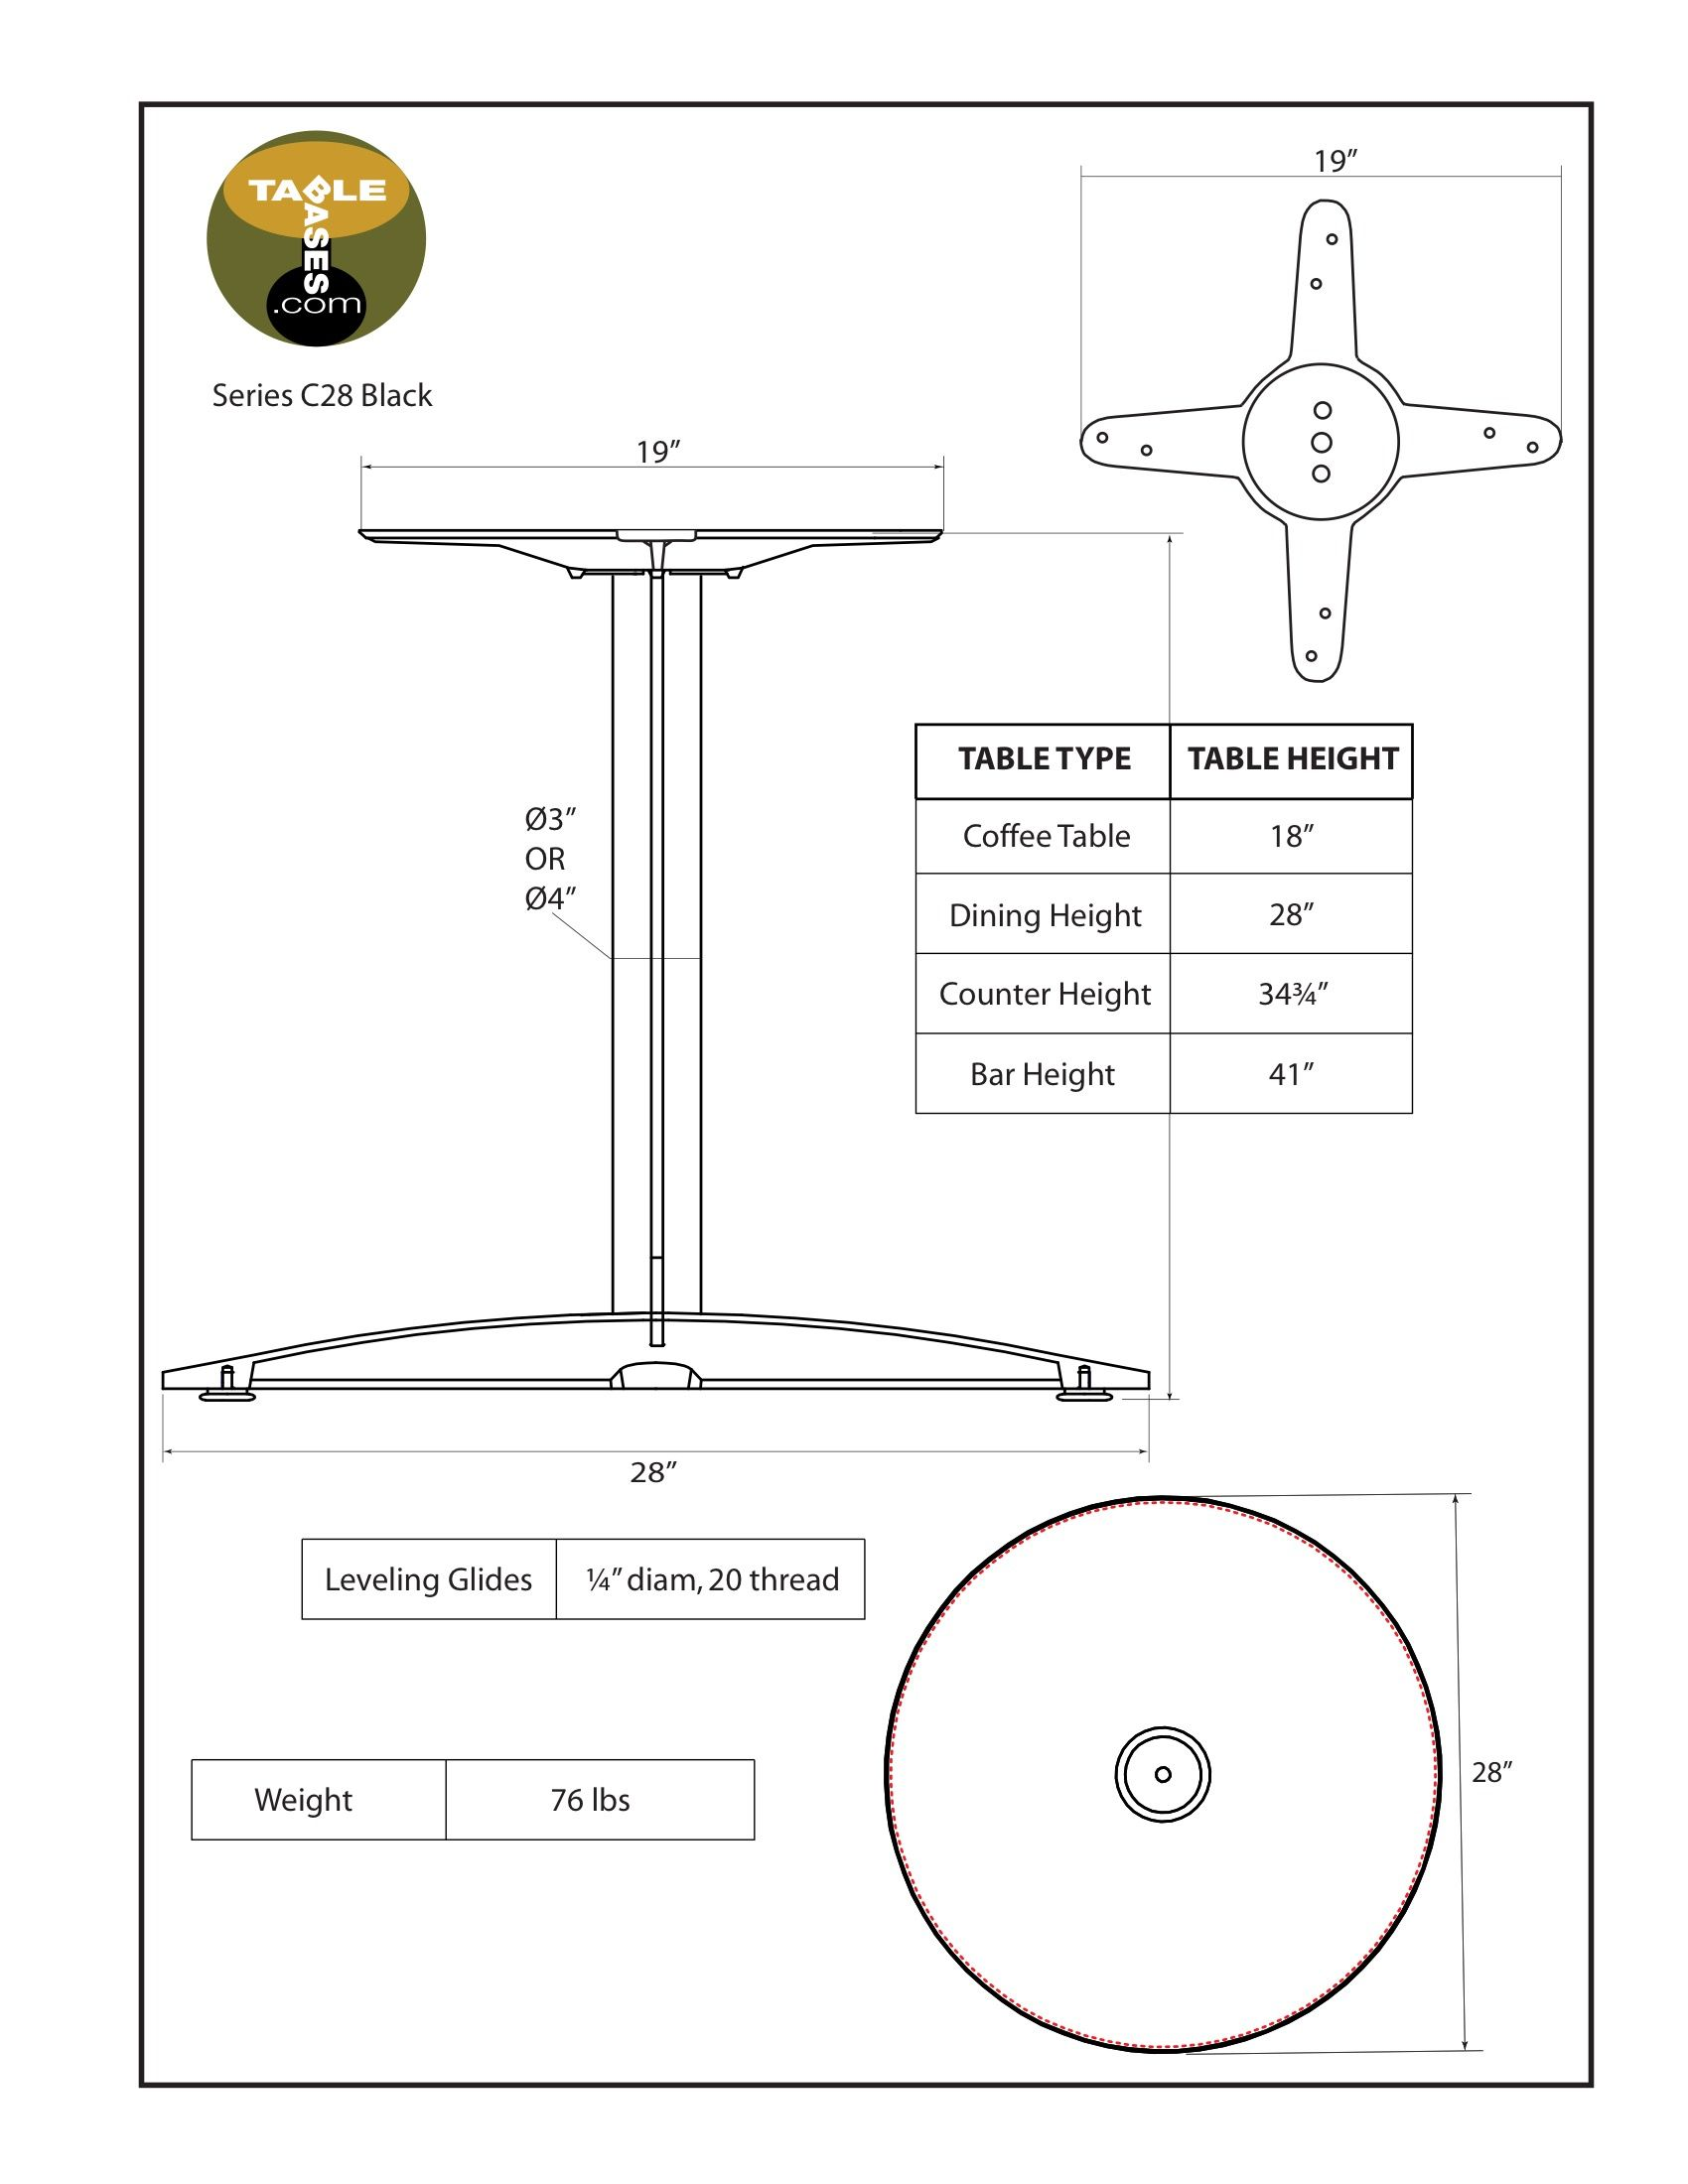 C28 Black Table Base - Specifications